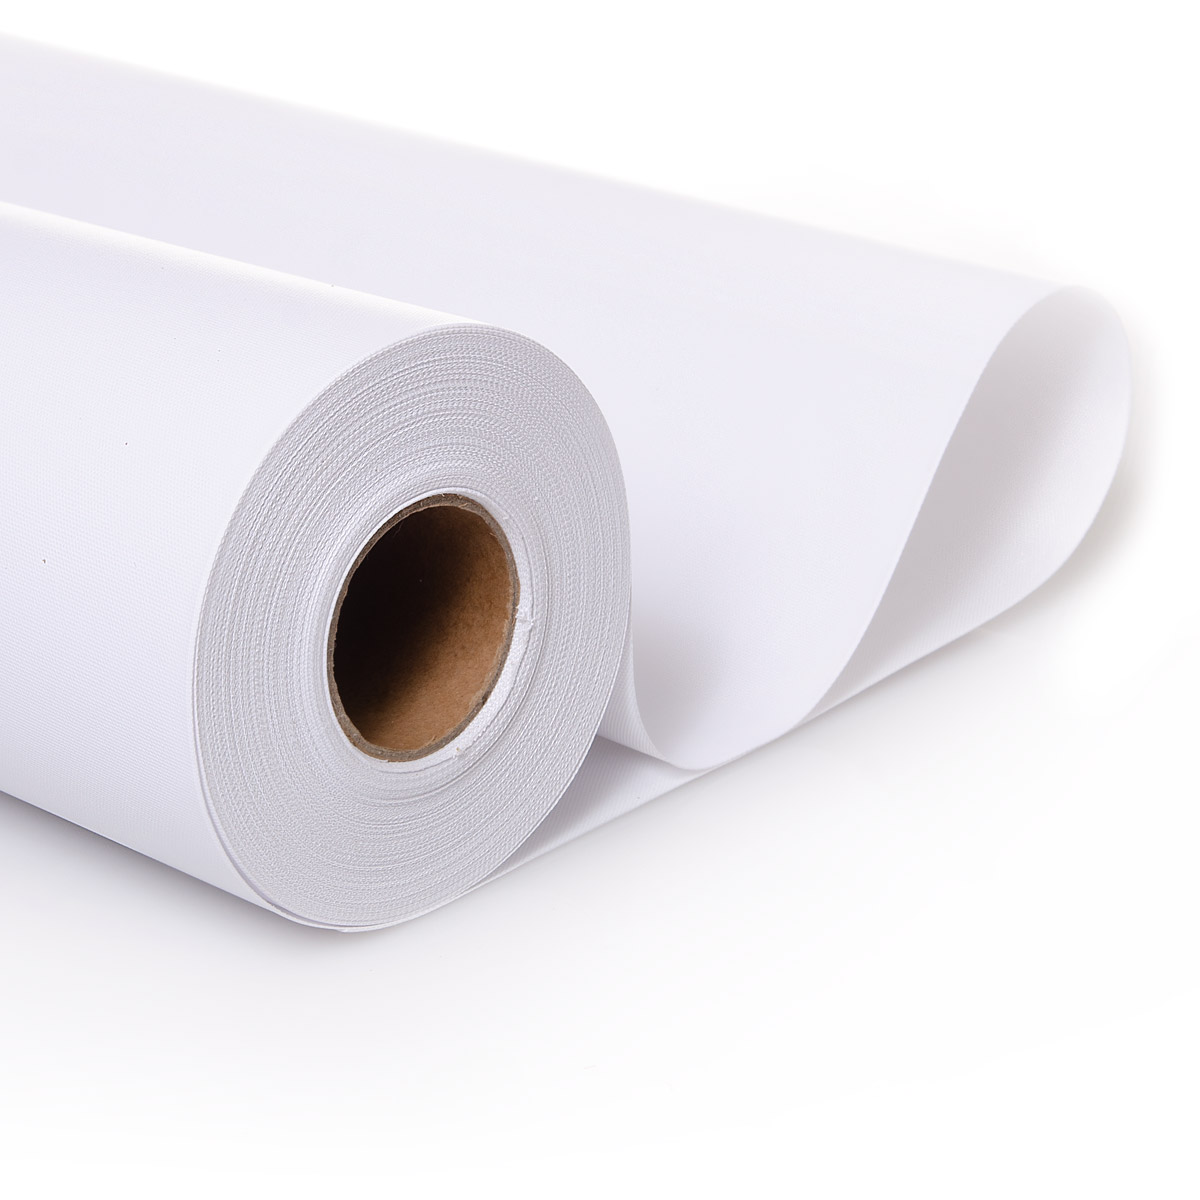 1 Rolle Cotton Inkjet Canvas | Leinwand | Glossy | 380G | 111,8 m x 18m